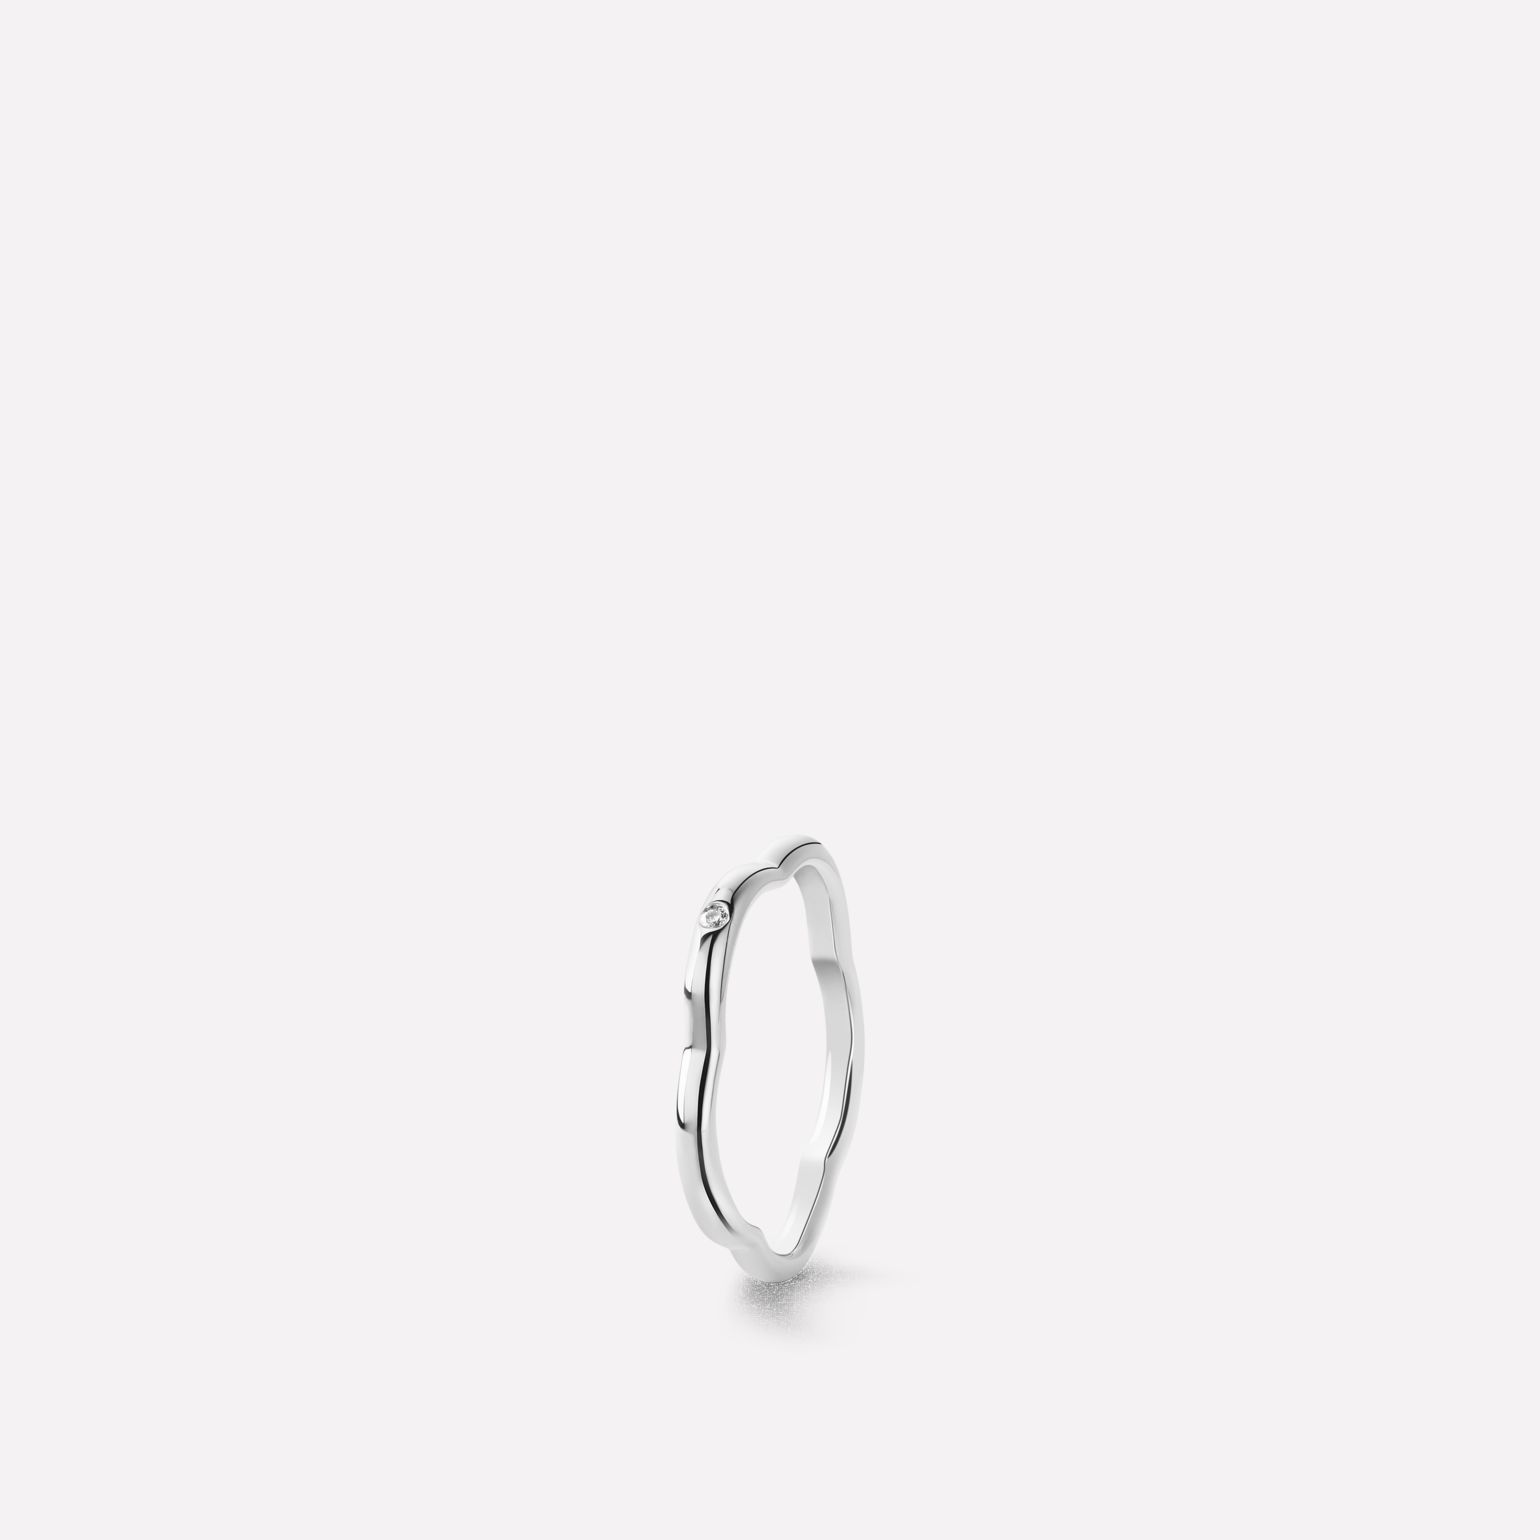 Coco Mademoiselle Camélia Ring - Camélia Ring In 18k White Gold With One